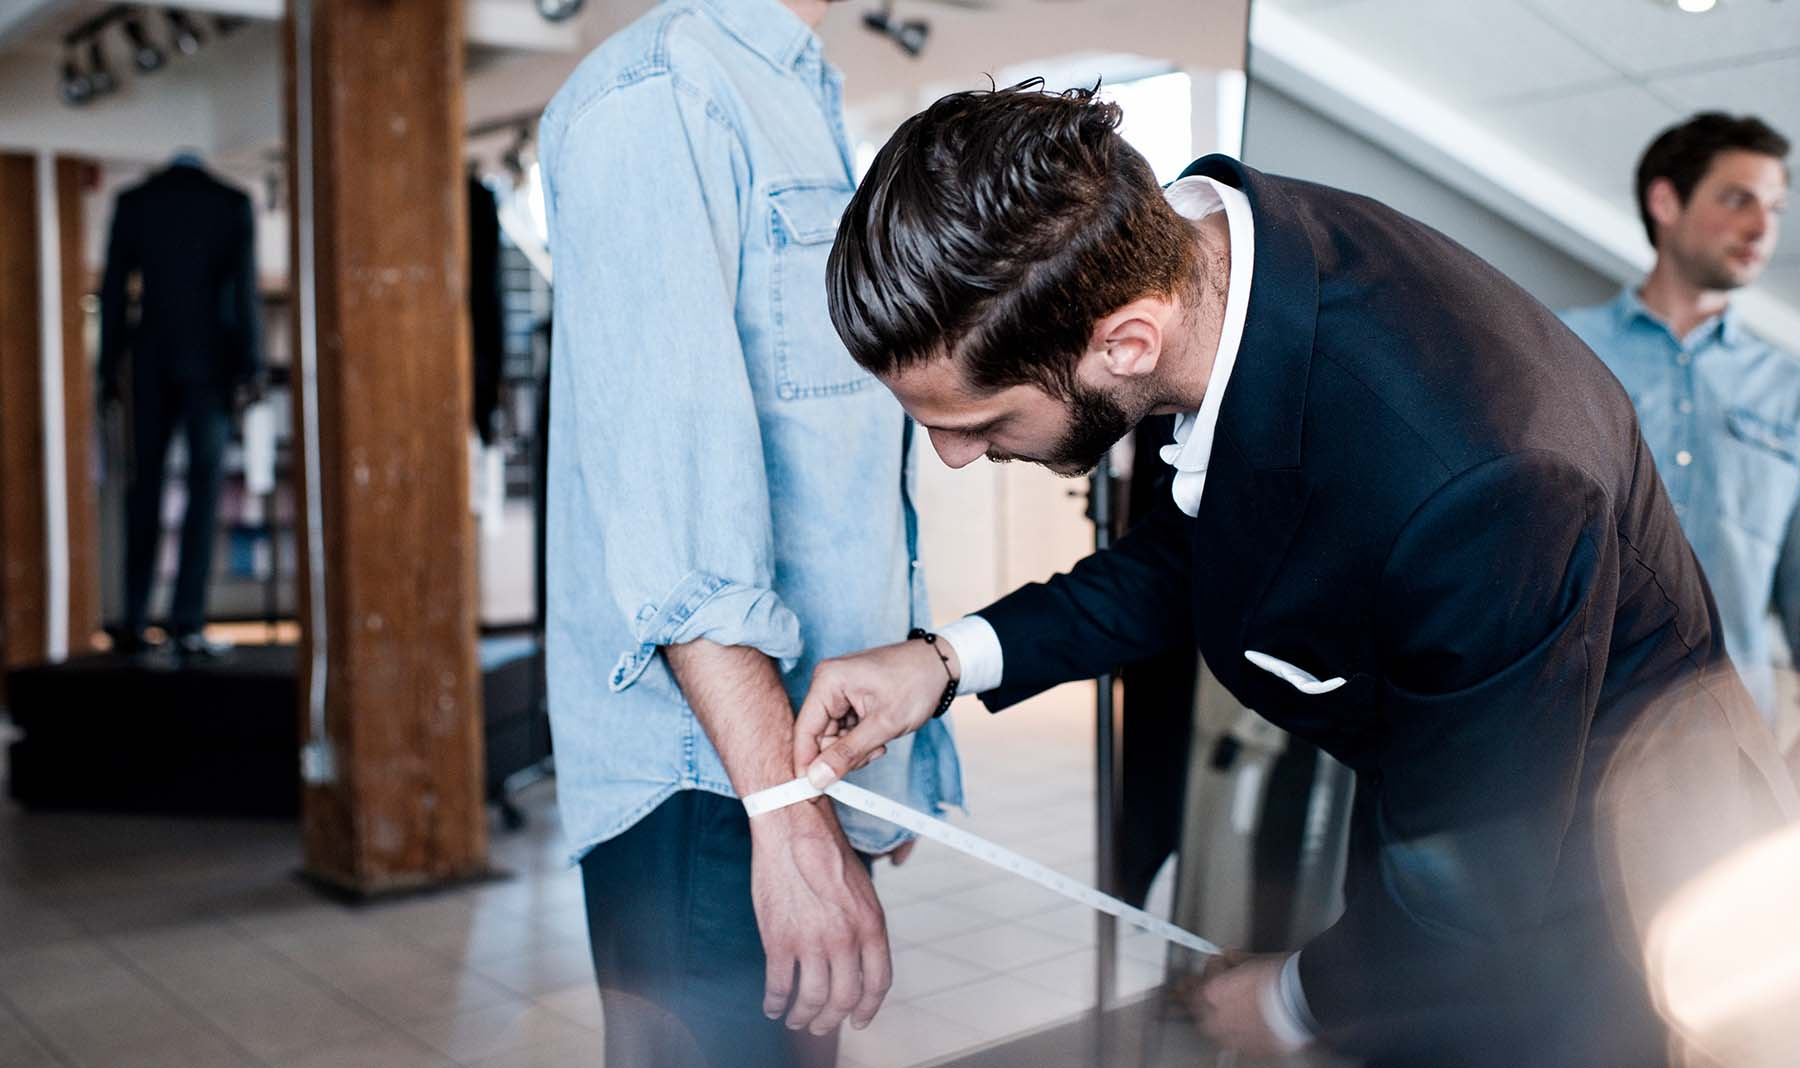 Wearing made to measure always looks and feels better than any other suit.